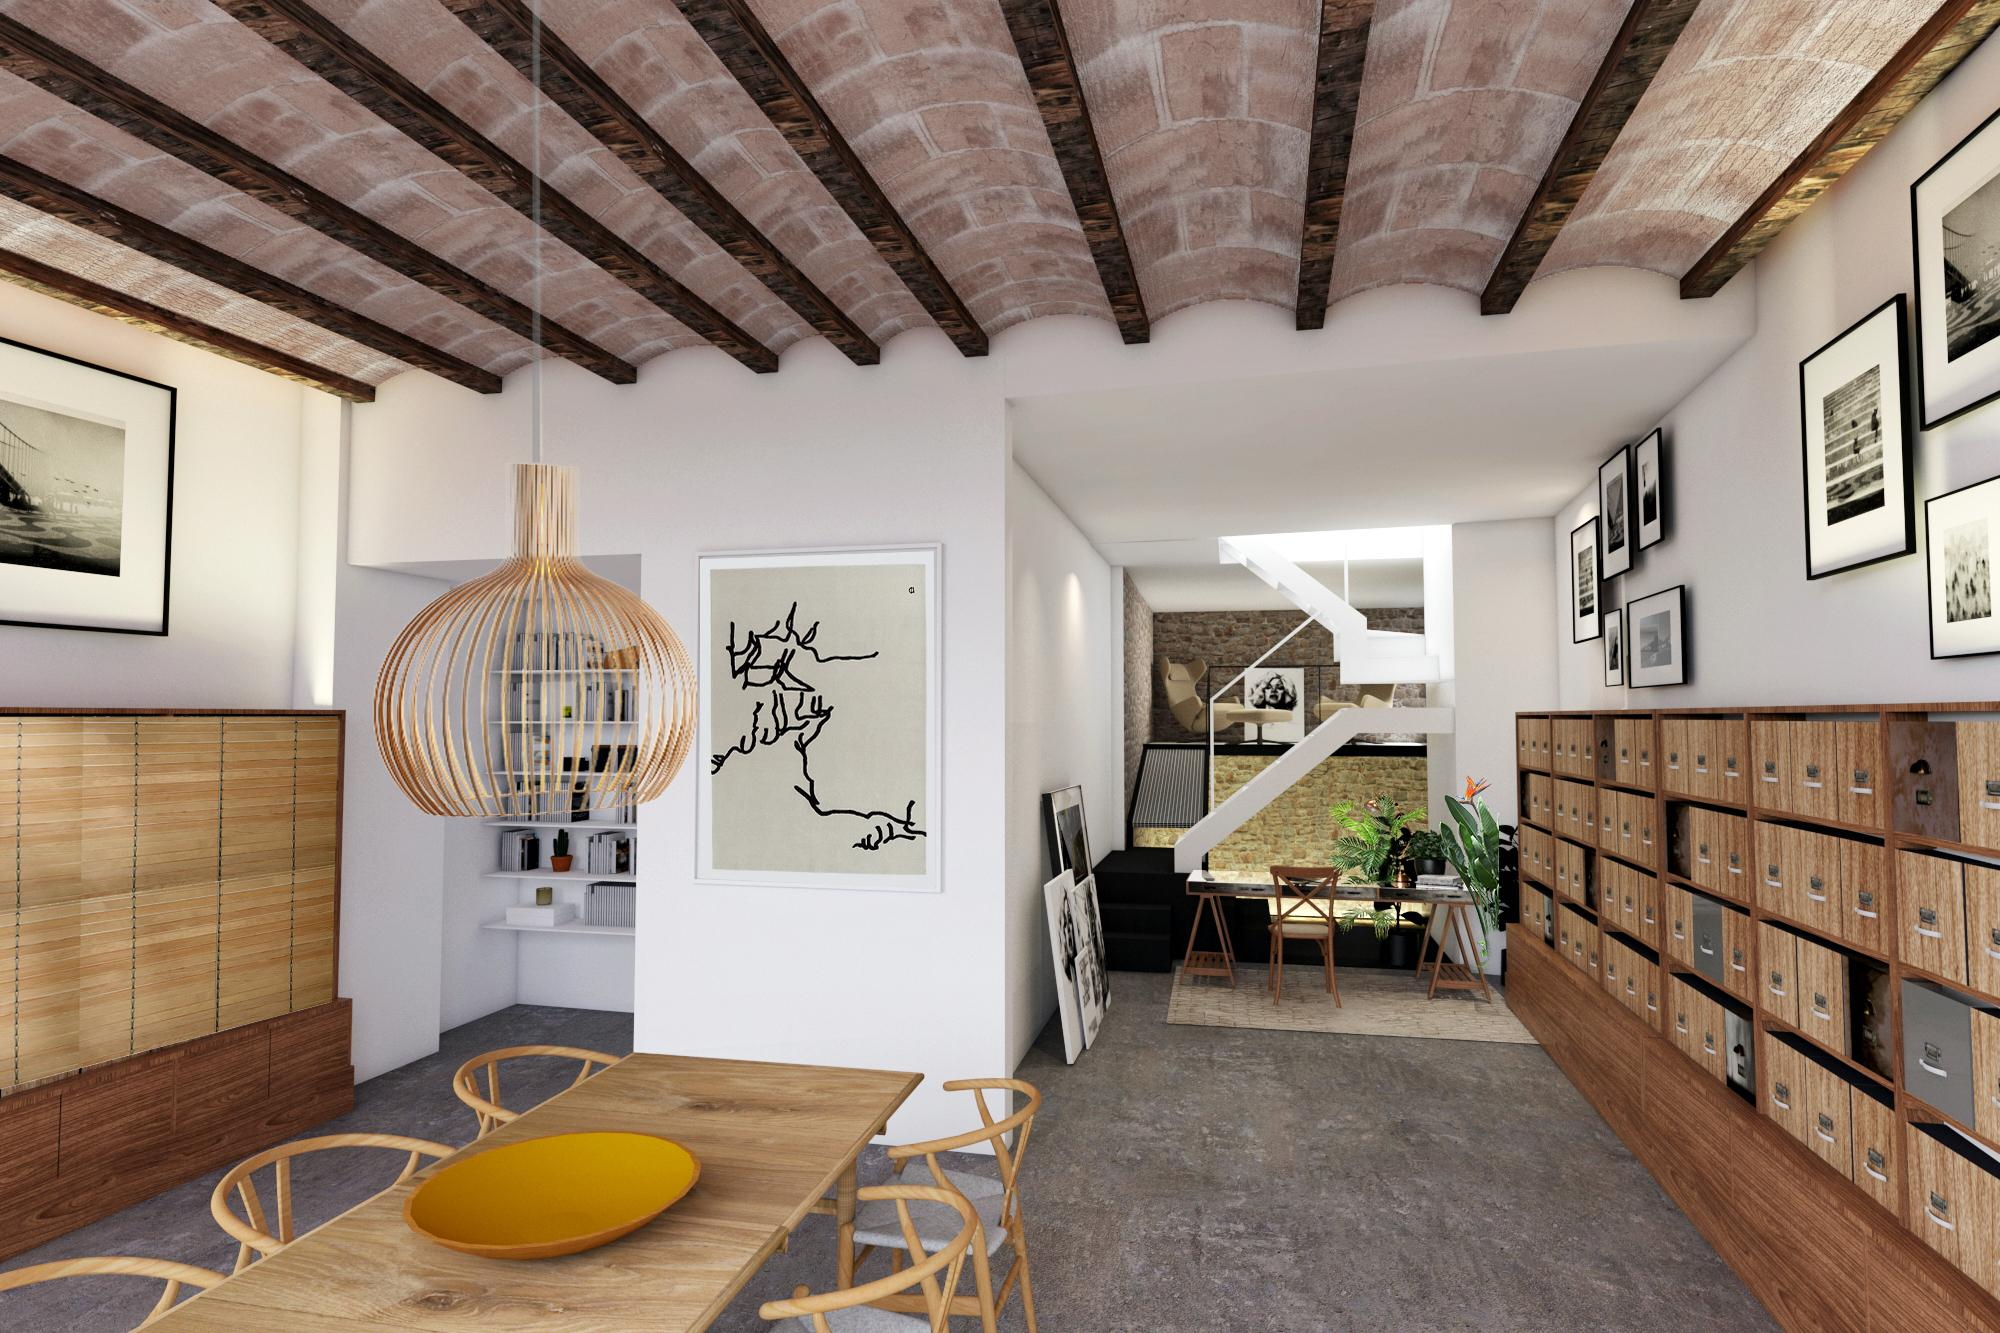 238215 Flat for sale in Ciutat Vella, Barri Gótic 4